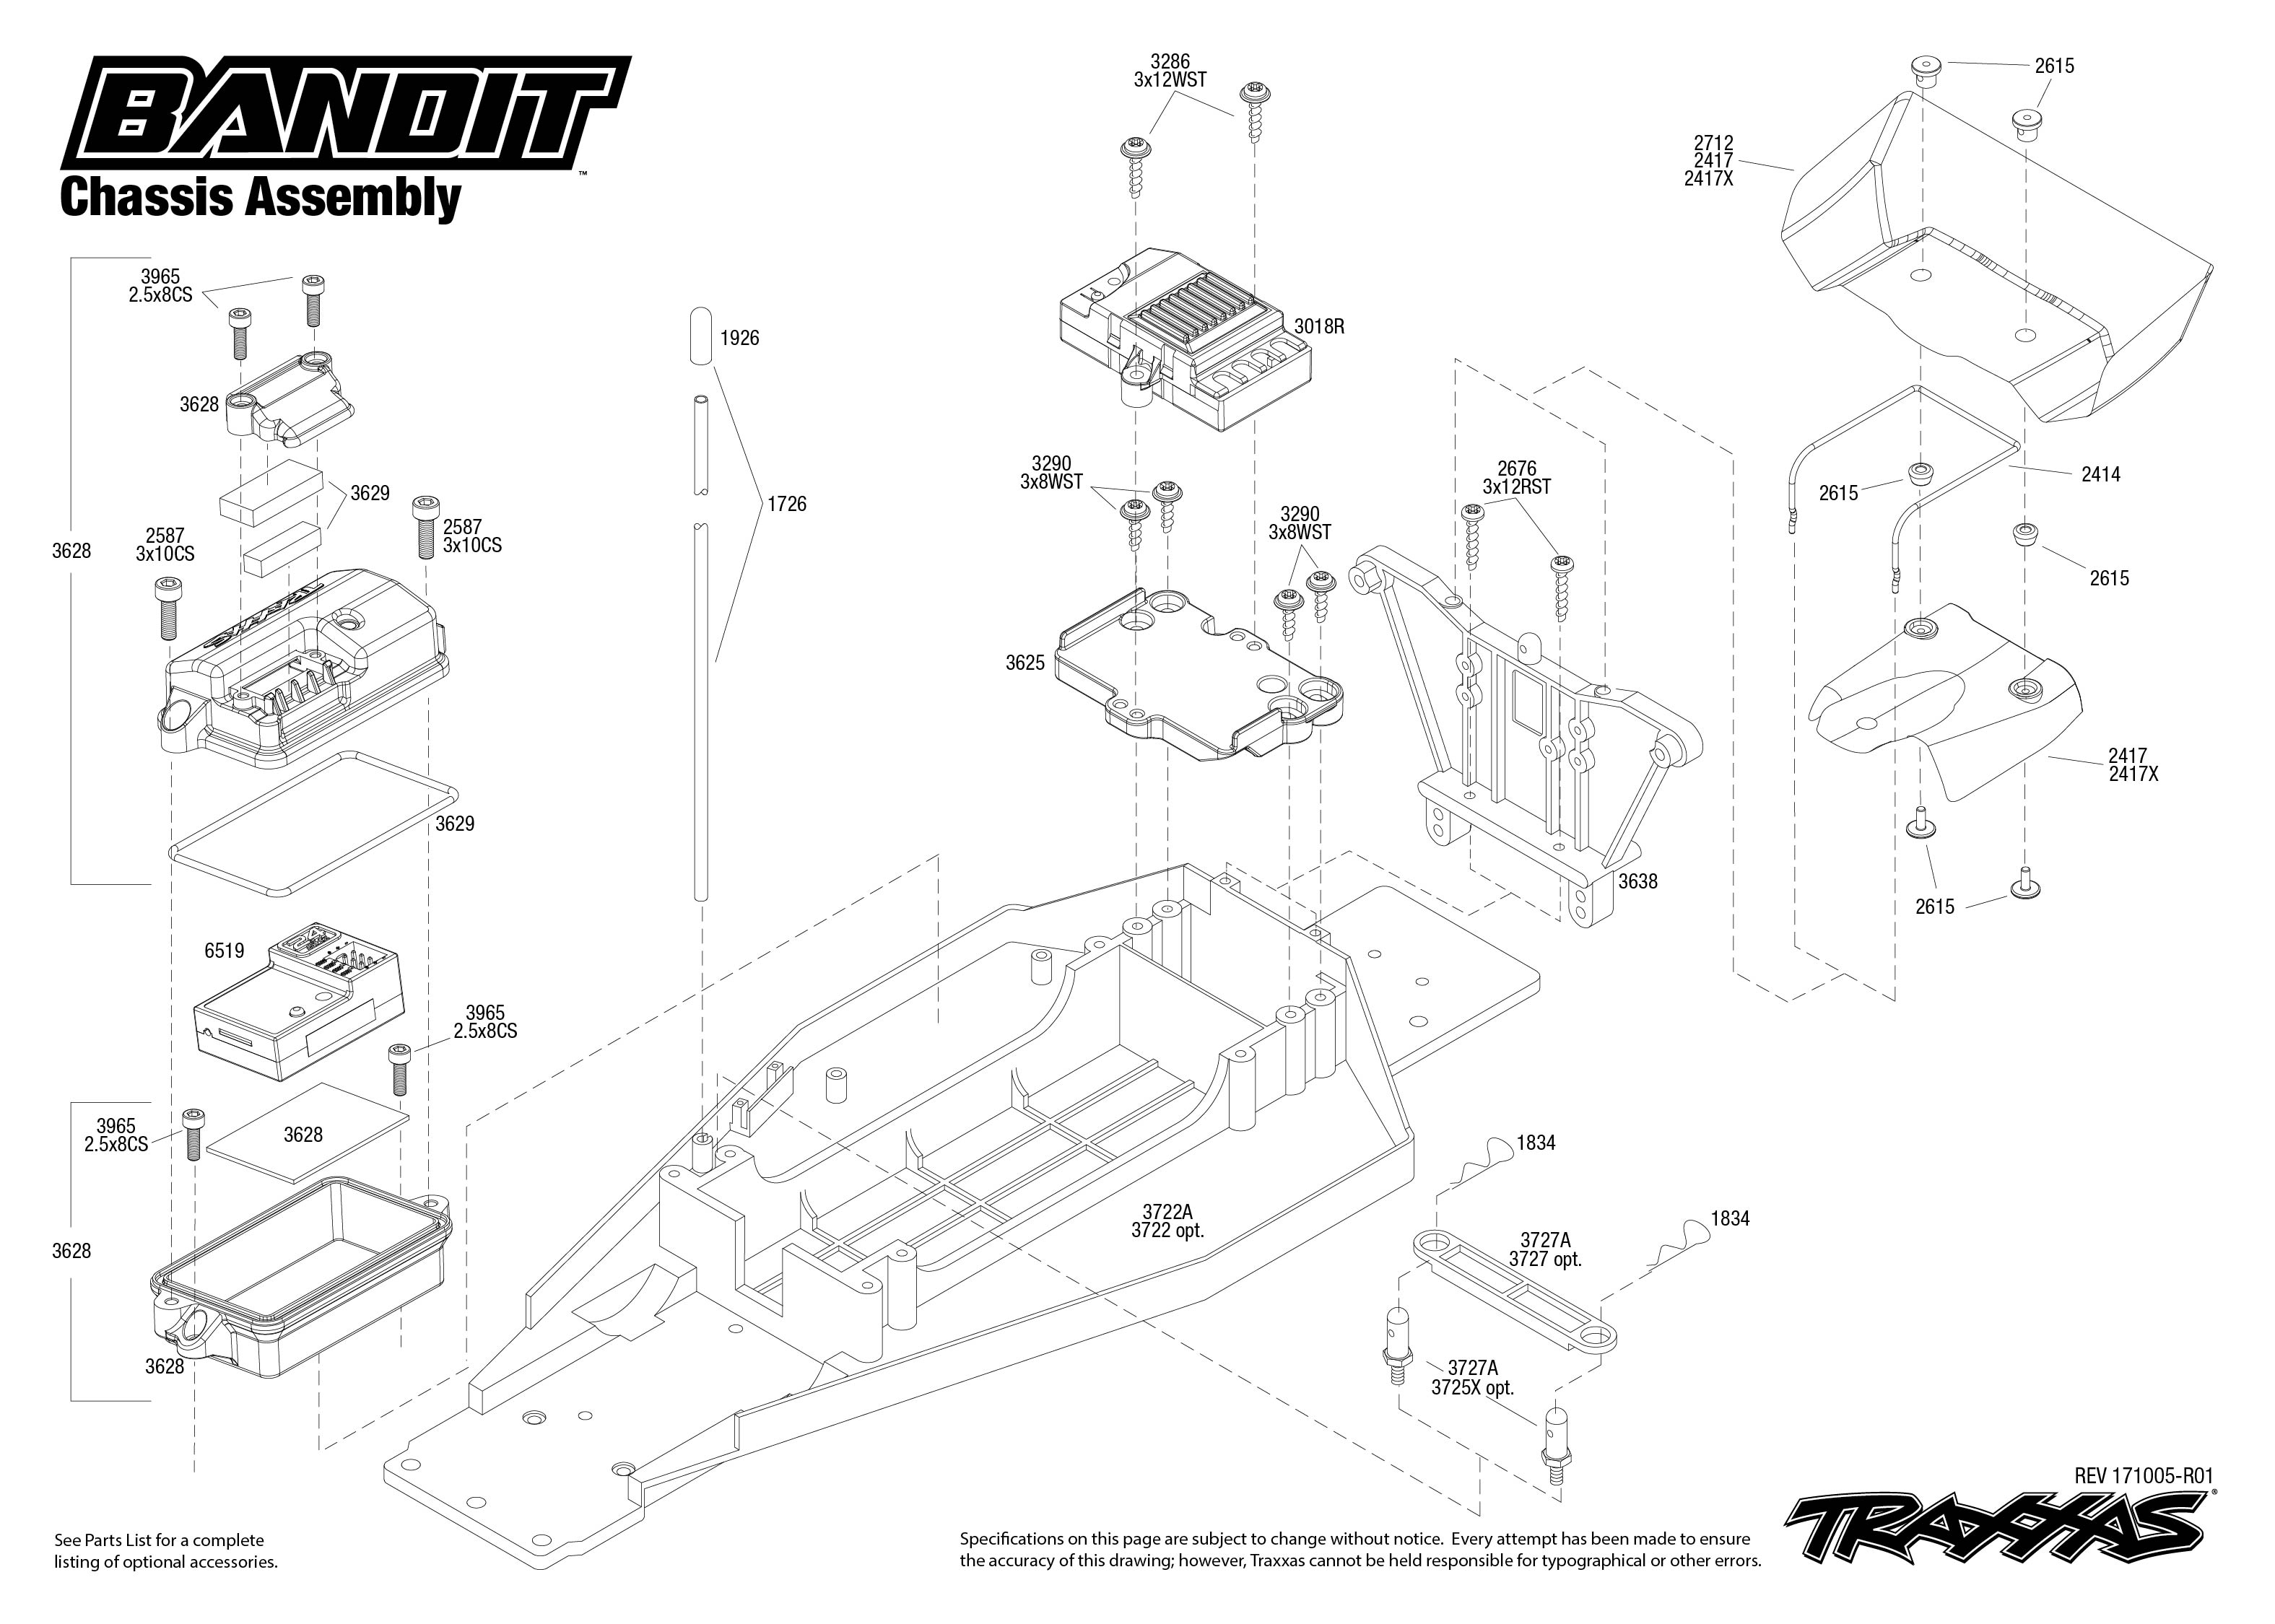 Traxxas Bandit 1/10 Scale RTR Off-Road Buggy with TQ 2